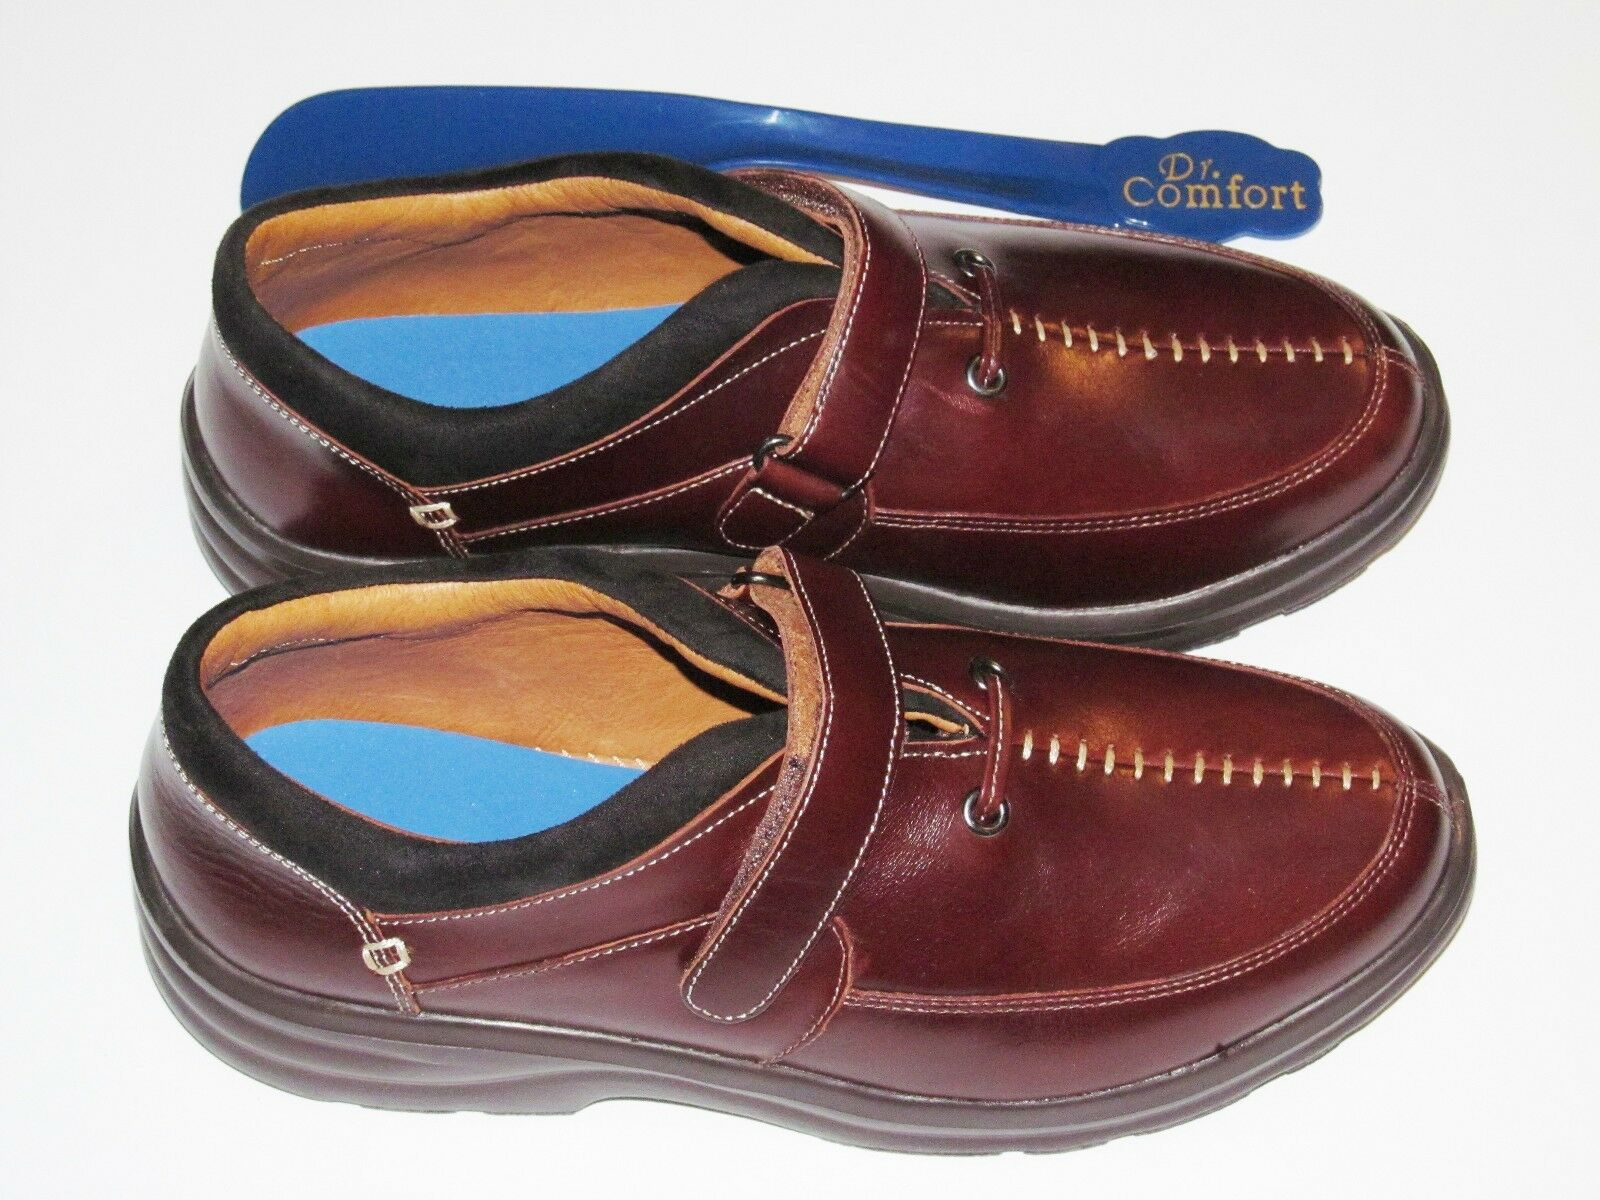 New Dr Comfort Comfort Dr Walnut Damens Delight Leder Diabetic Therapeutic Schuhes MSRP 174 caddaf